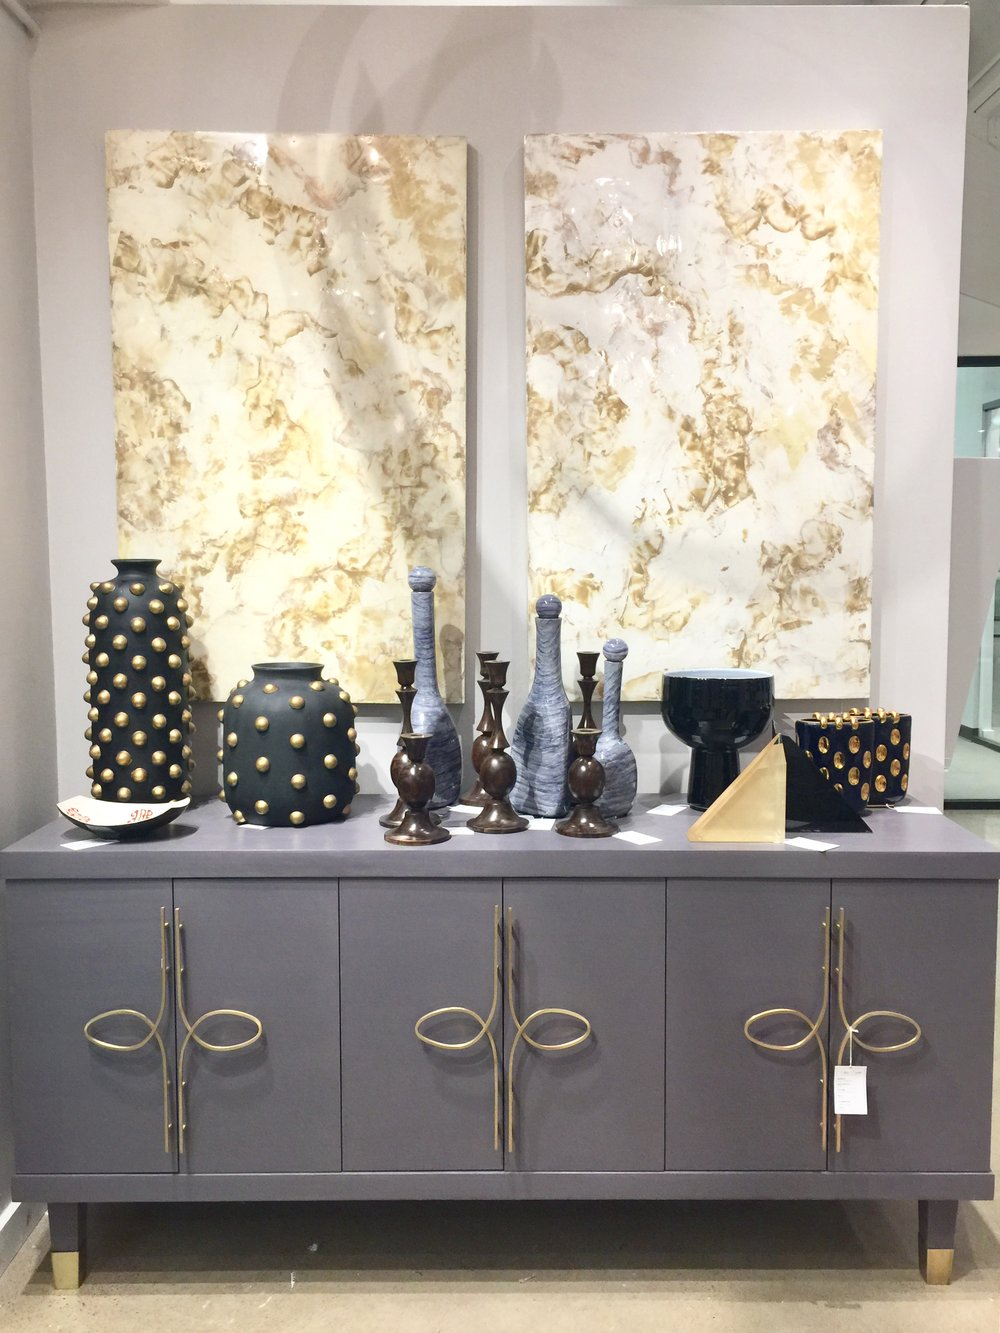 Dallas Market Robin Baron showroom